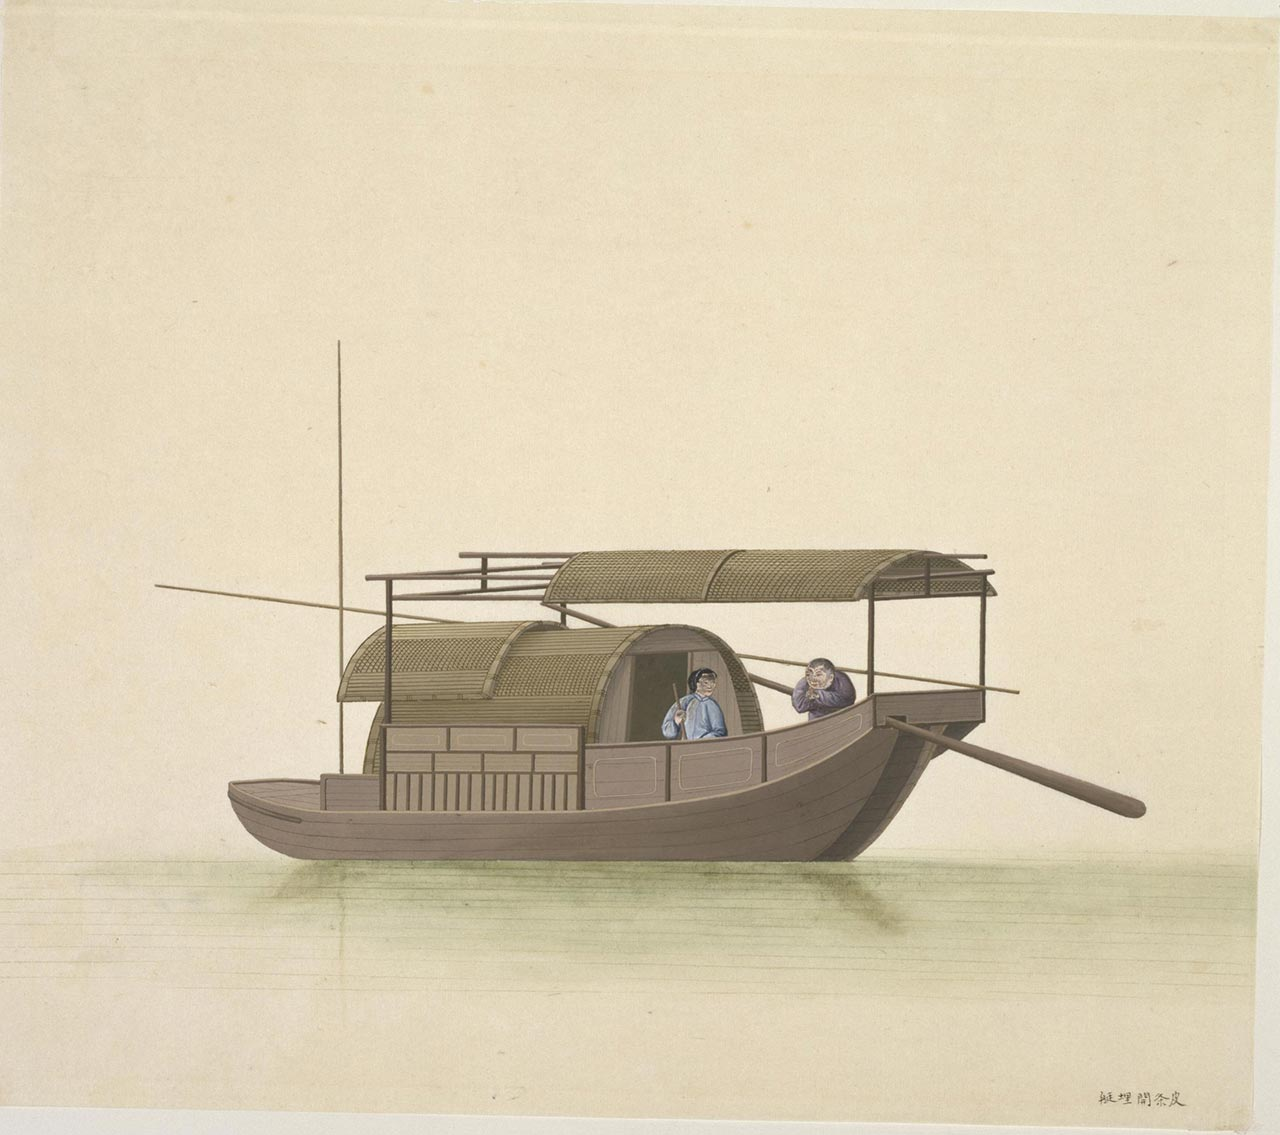 A pimp's boat, used to ferry clients from the shore to the prostitute's boat which remained stationary on the river.